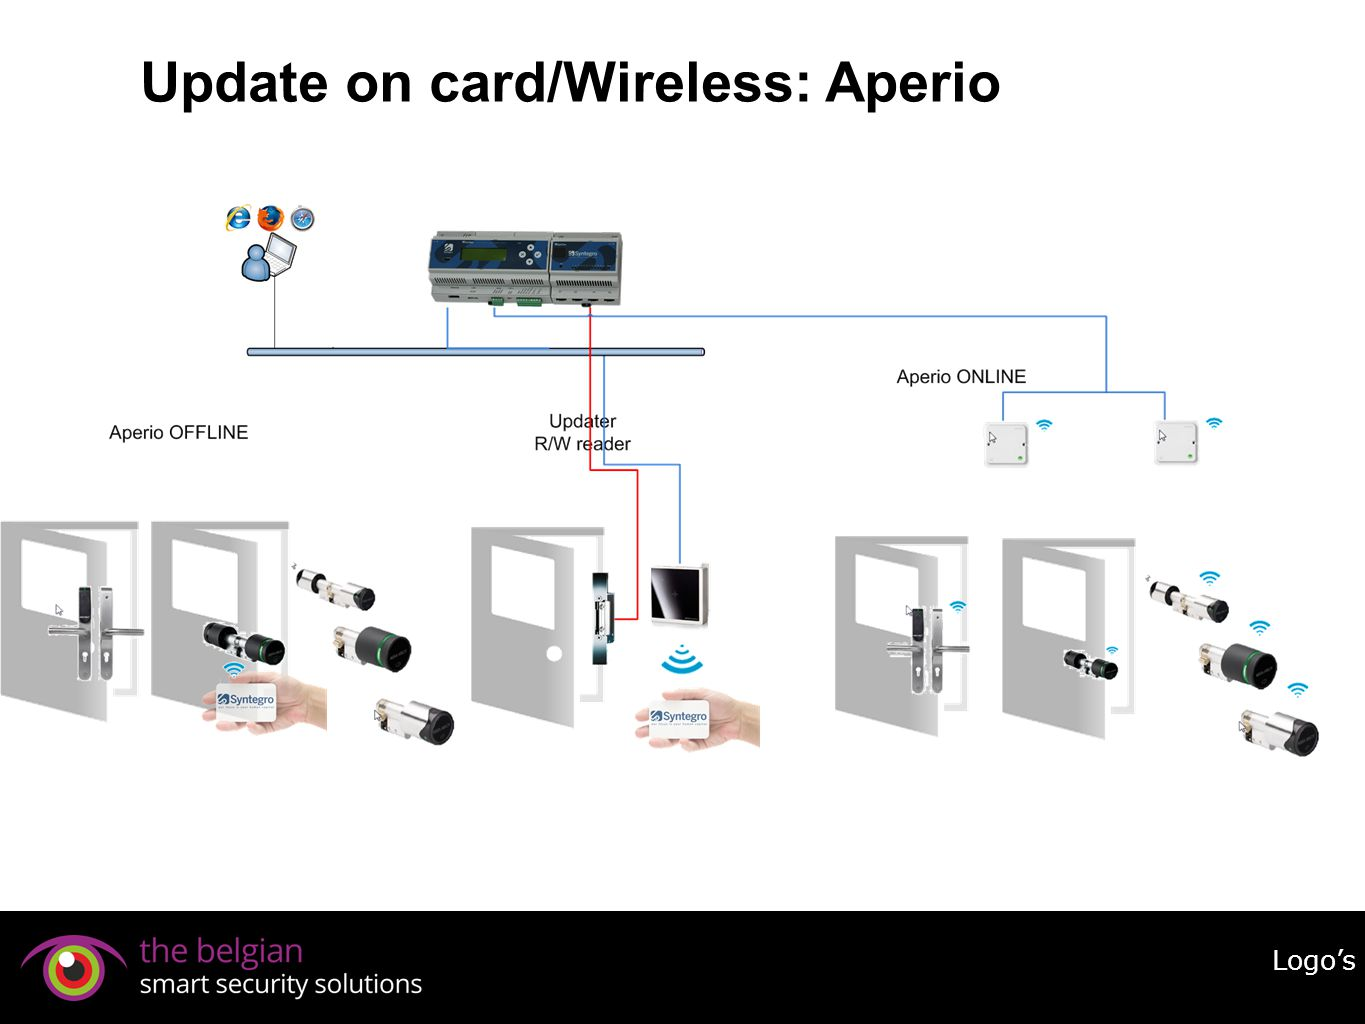 Update on card/Wireless: Aperio